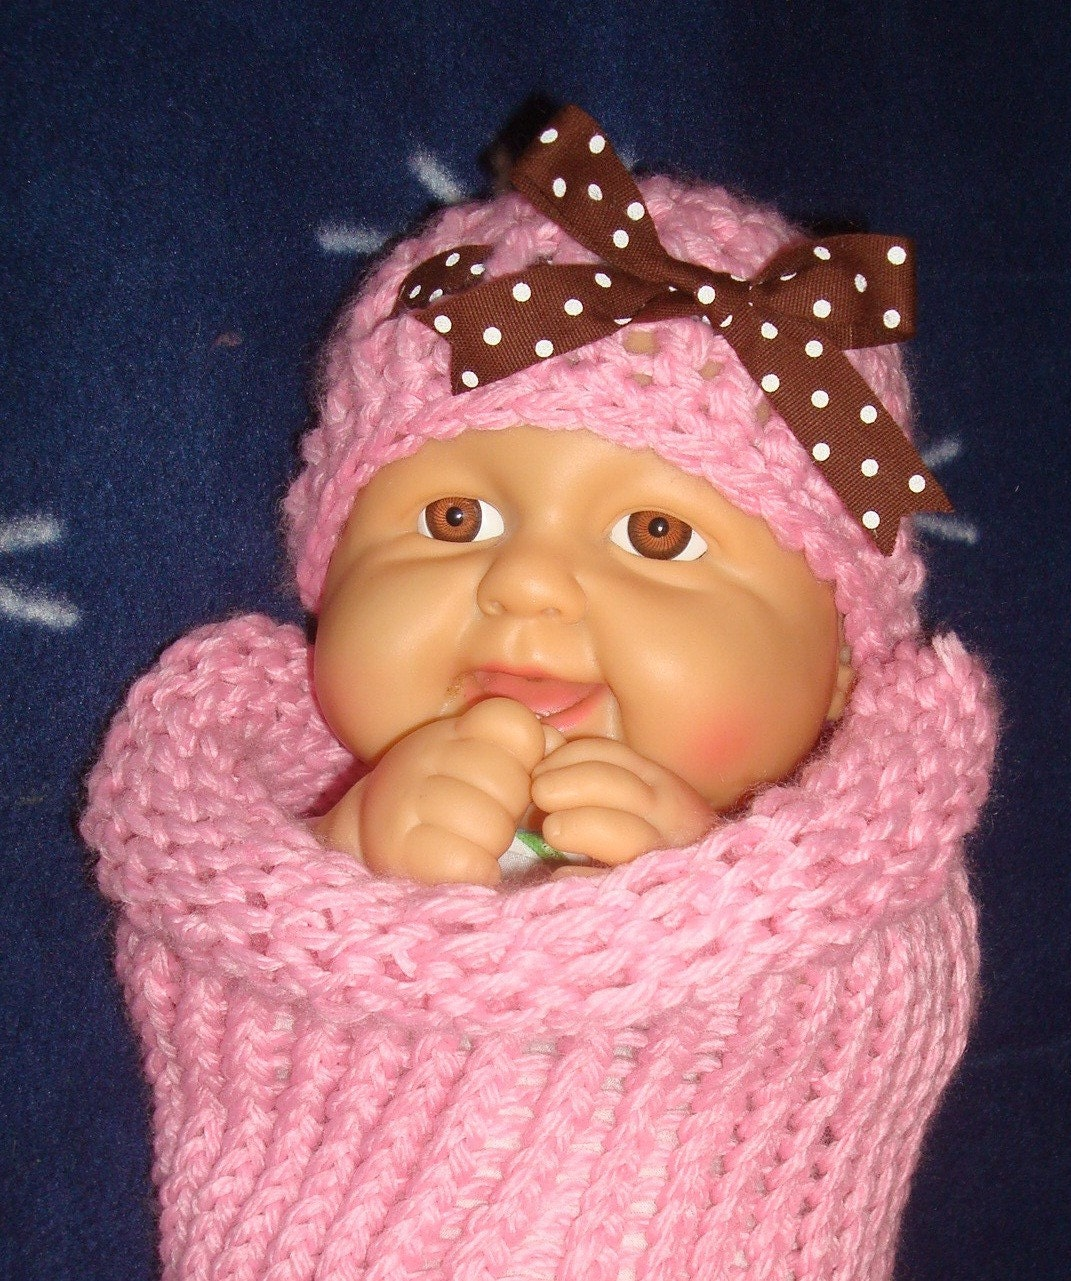 Newborn set in baby pink color-  Soft stretchy cocoon and chunky  hat with bow.  Perfect for photo prop. Size 0-3month.